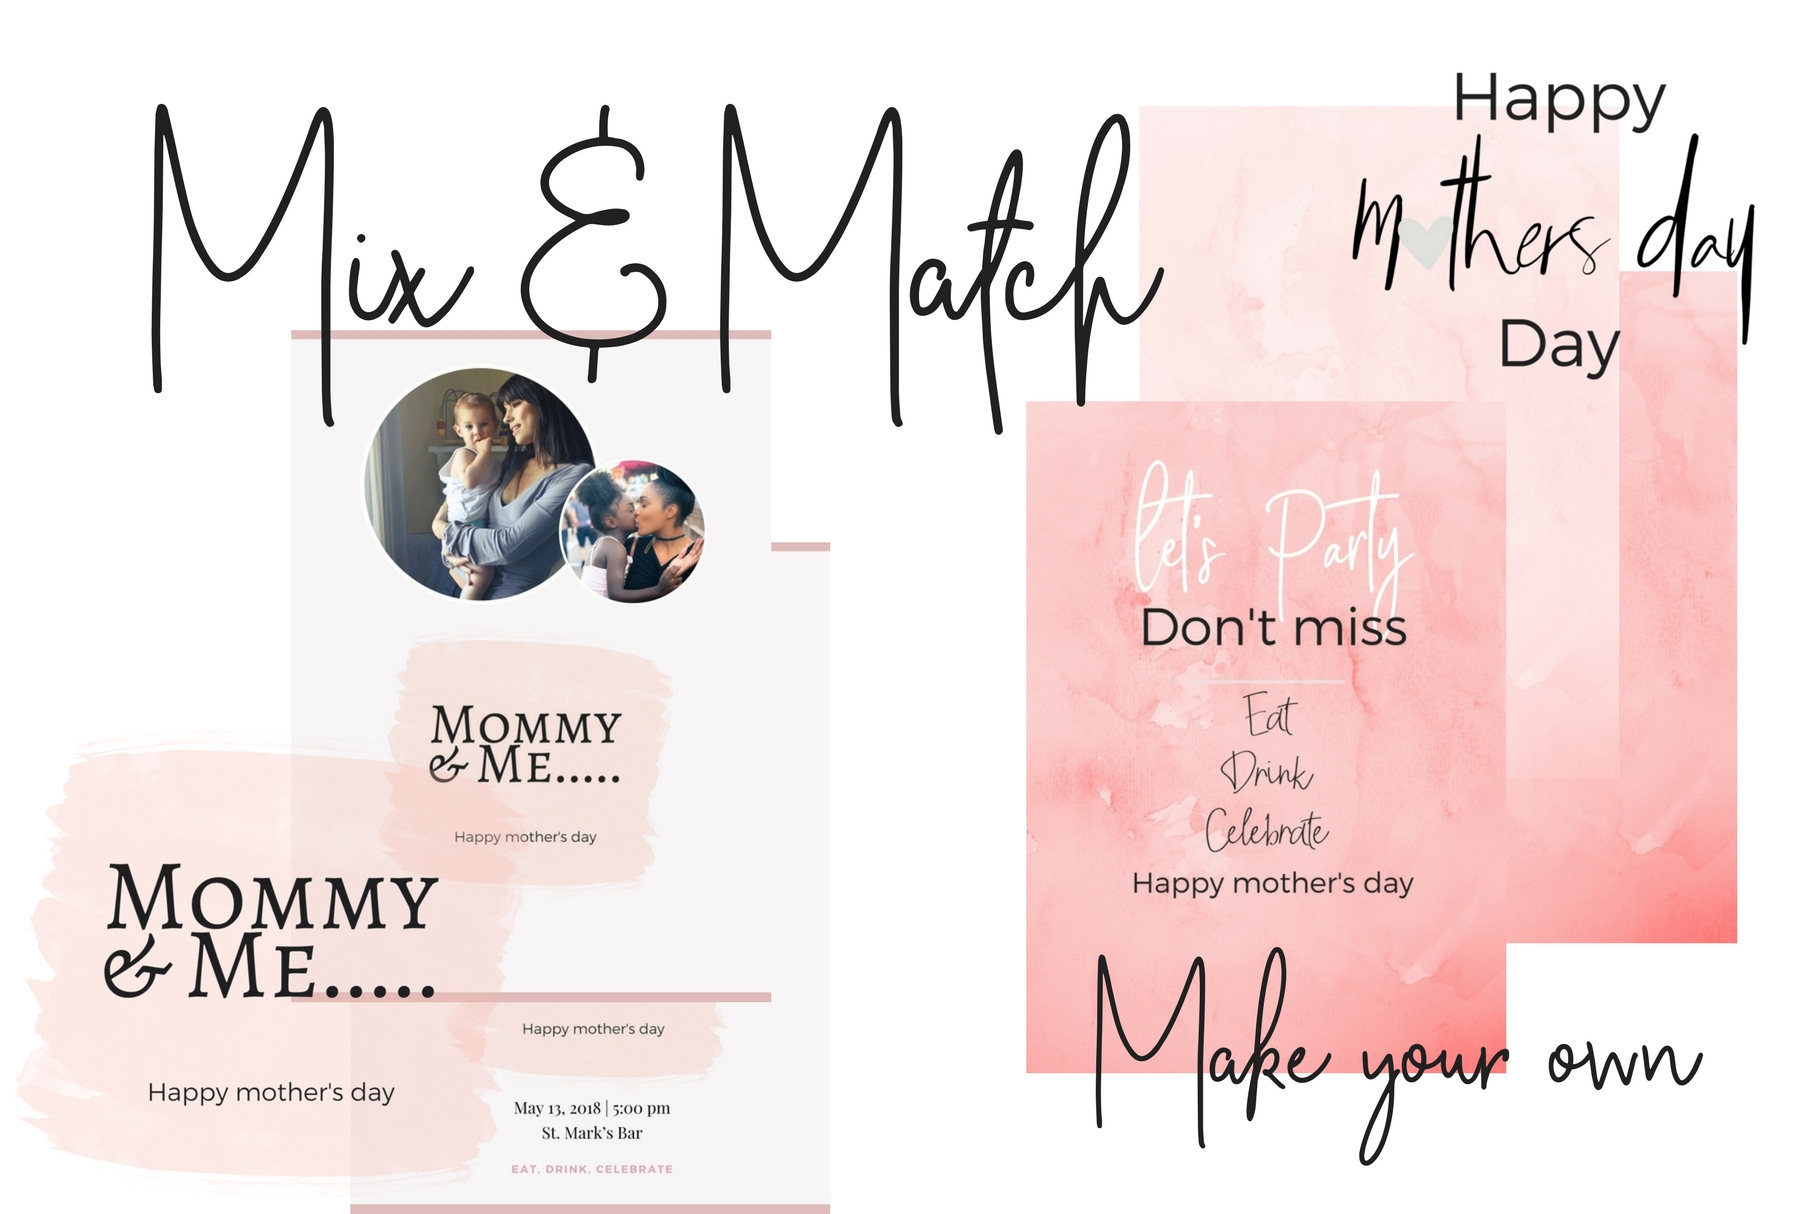 Mother's Day Lettering Graphic Web Elements By Creative Stash - Image 2